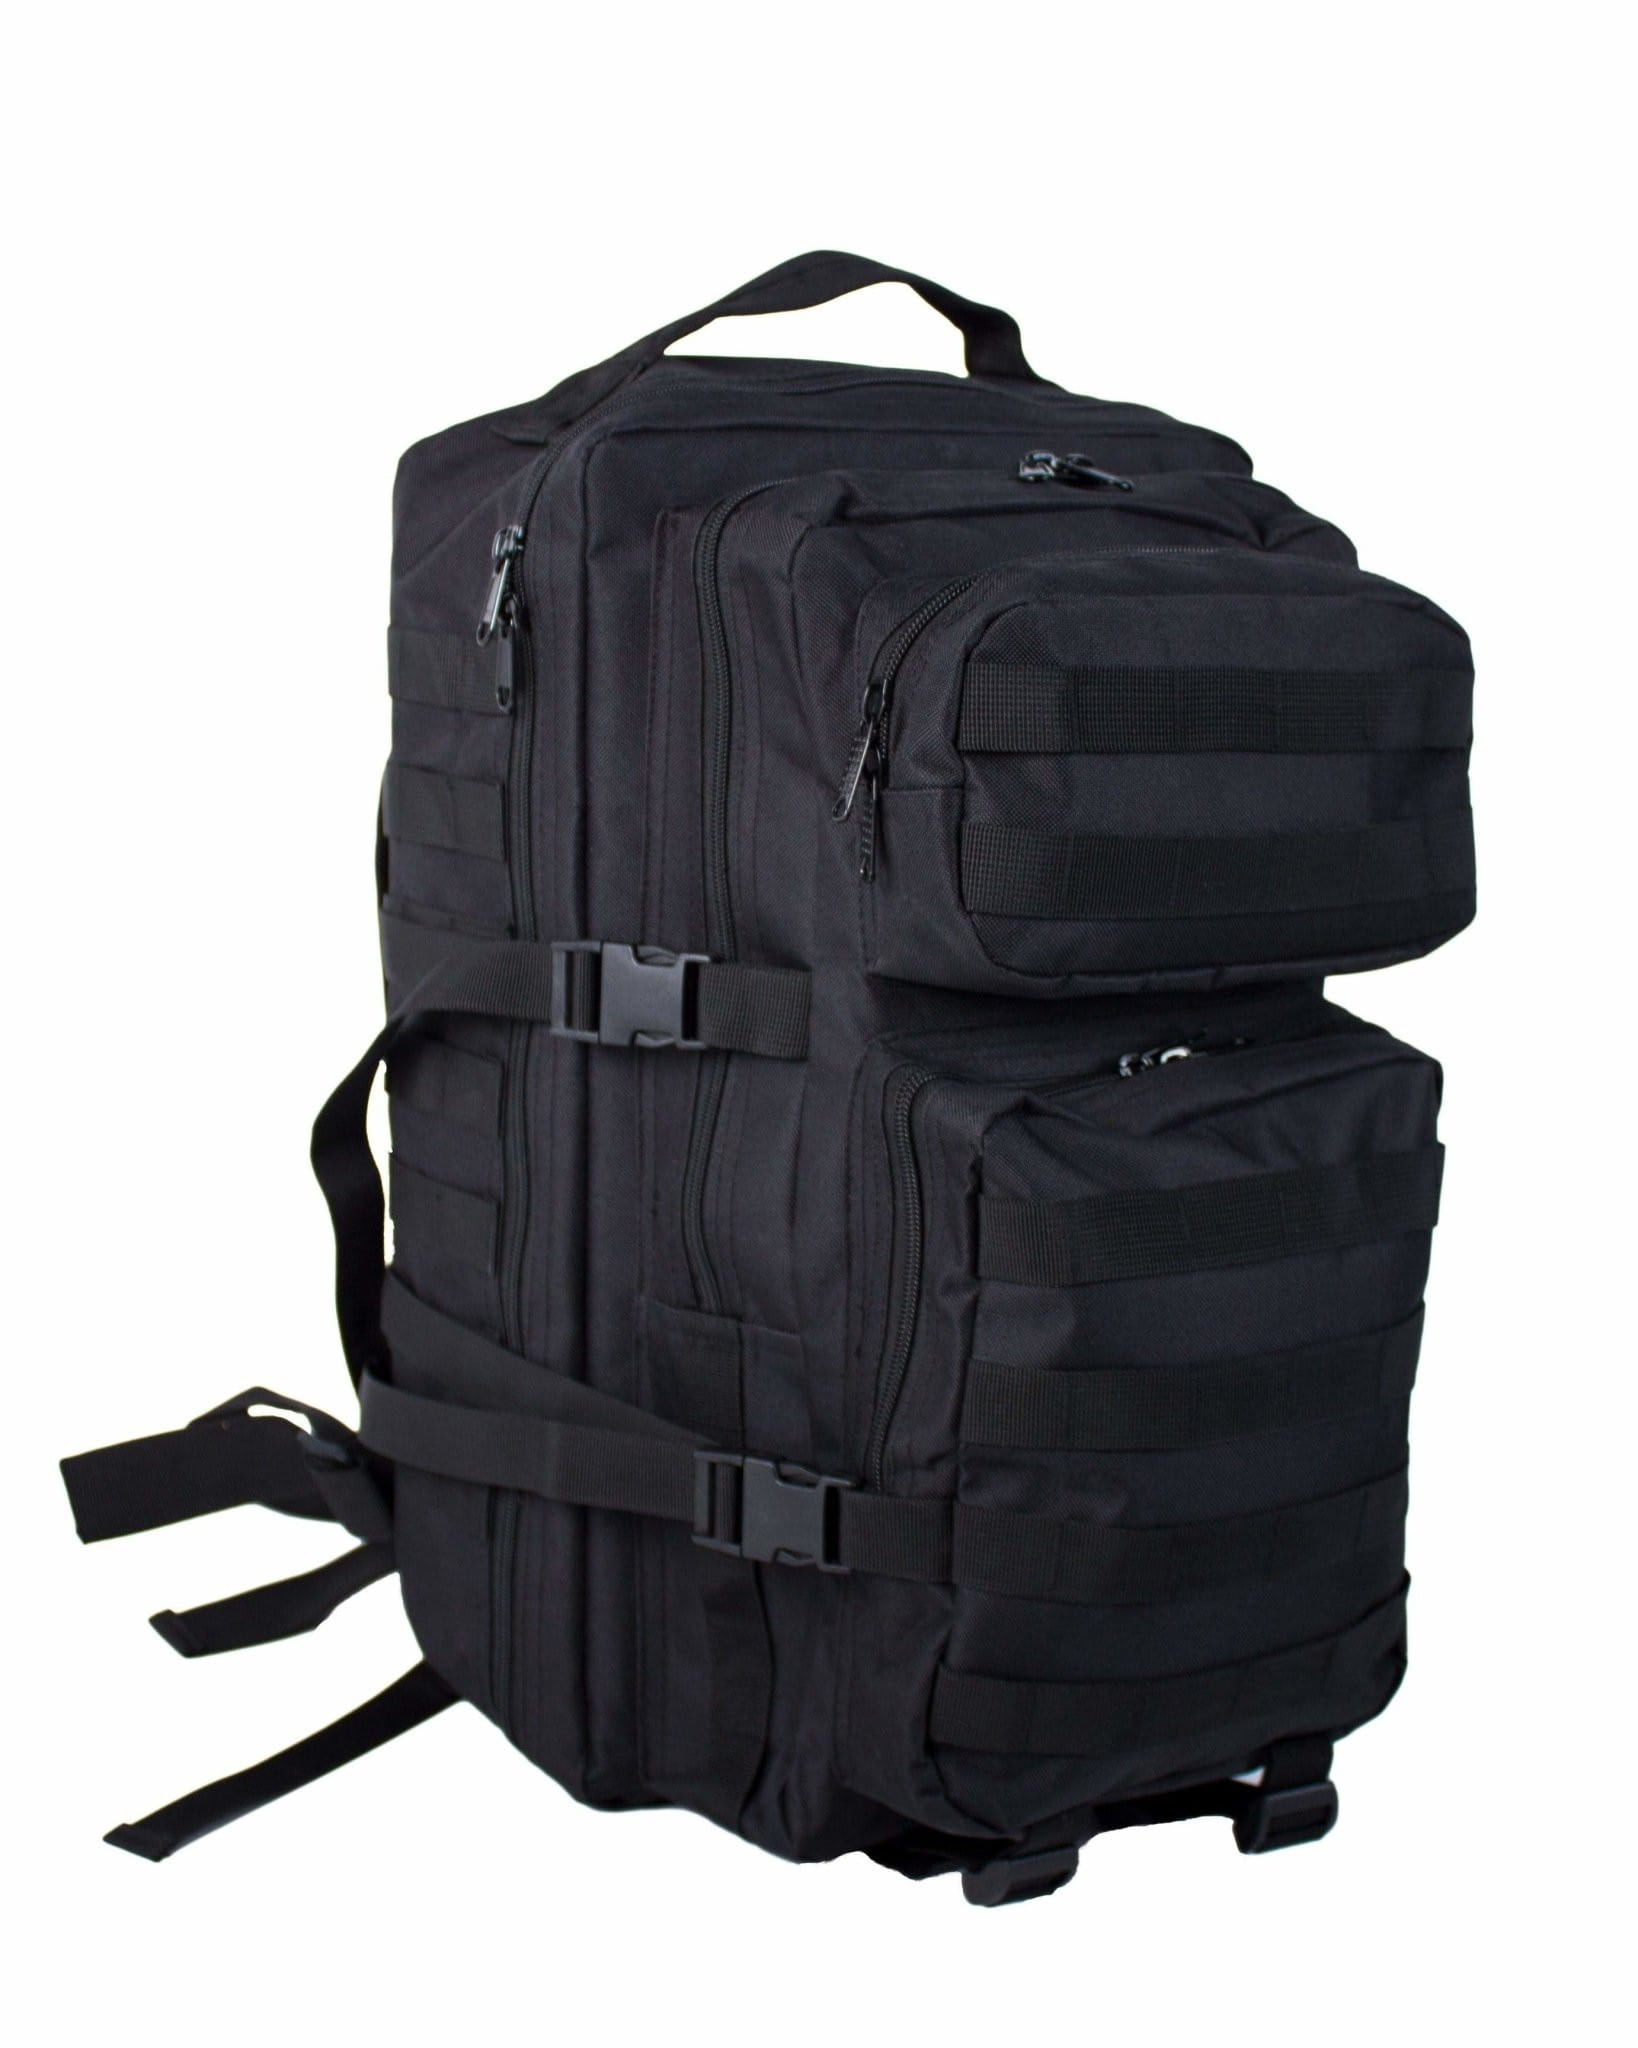 CHK-Shield Backpack MK1 Black M - CHK-SHIELD | Outdoor Army - Tactical Gear Shop